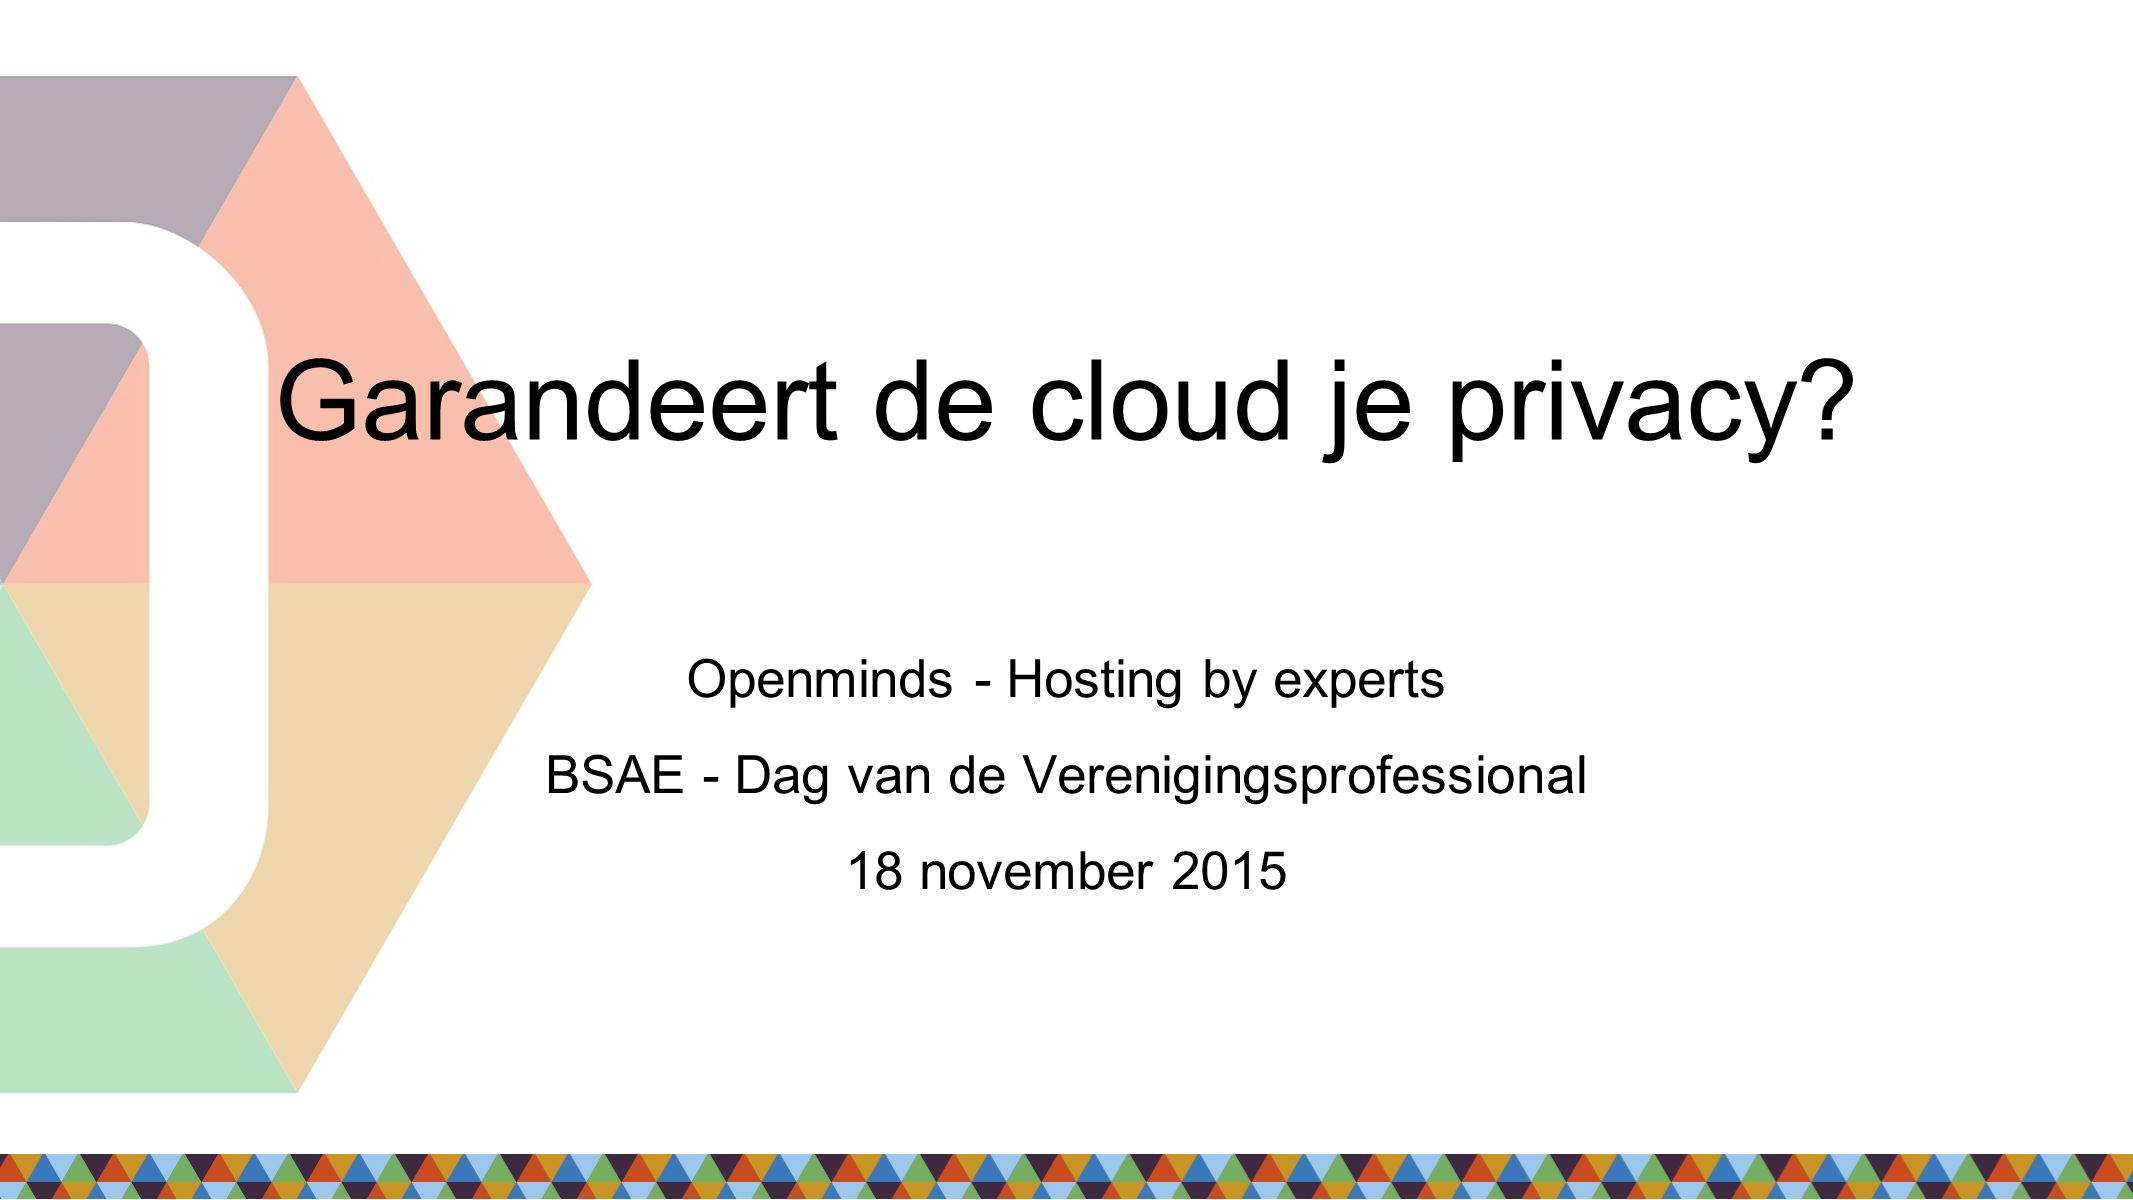 Garandeert de cloud je privacy.